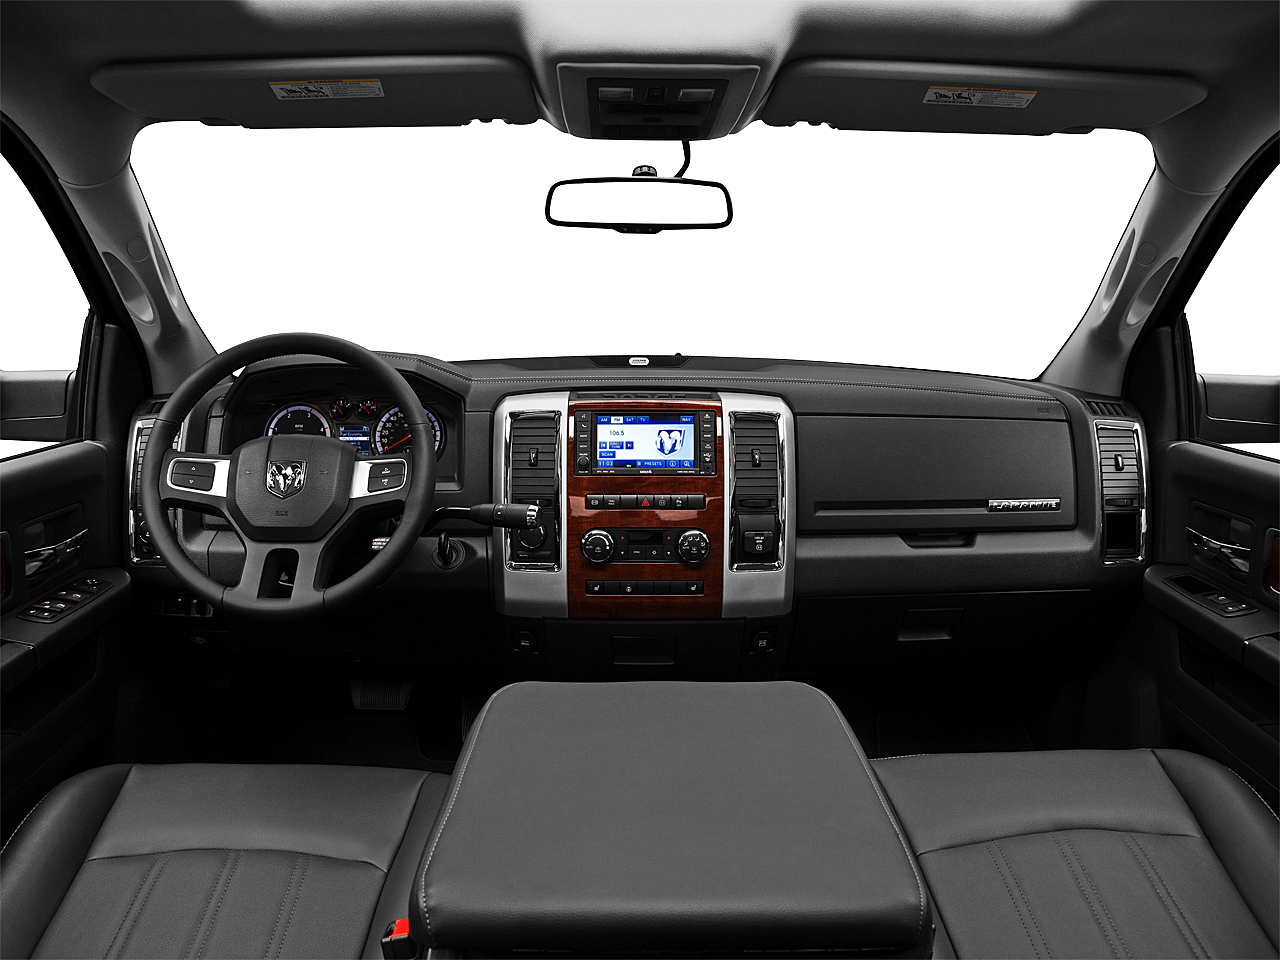 2011 Ram Trucks Ram 3500 DRW Laramie, centered wide dash shot